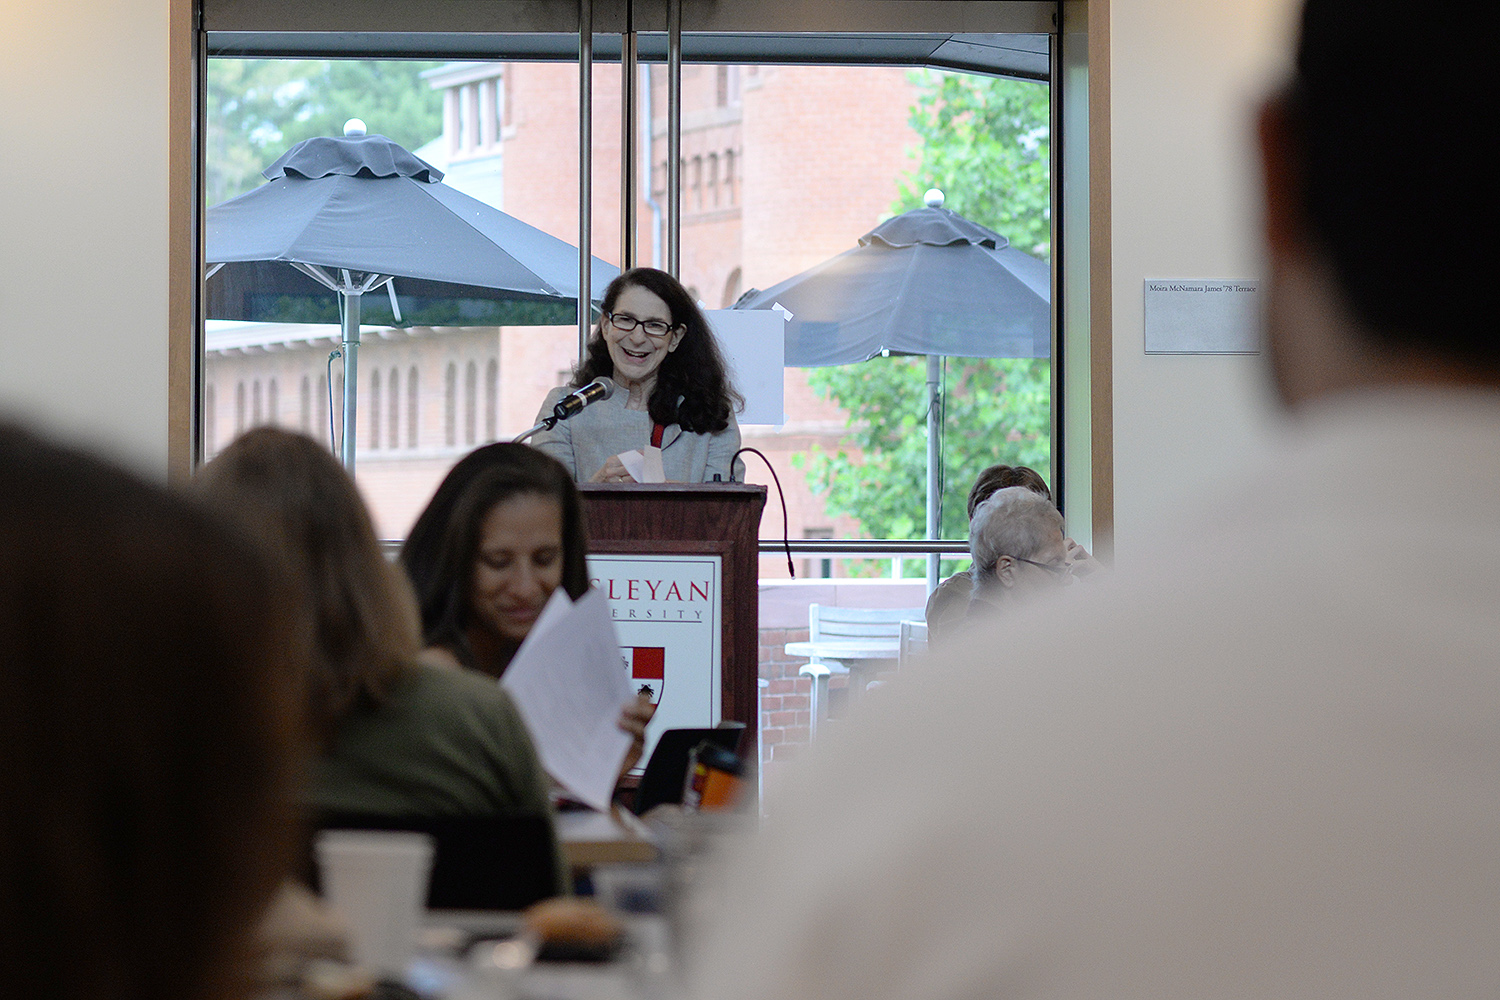 Anne Greene, director of the Wesleyan Writers Conference, welcomed the participants to the conference on June 16.